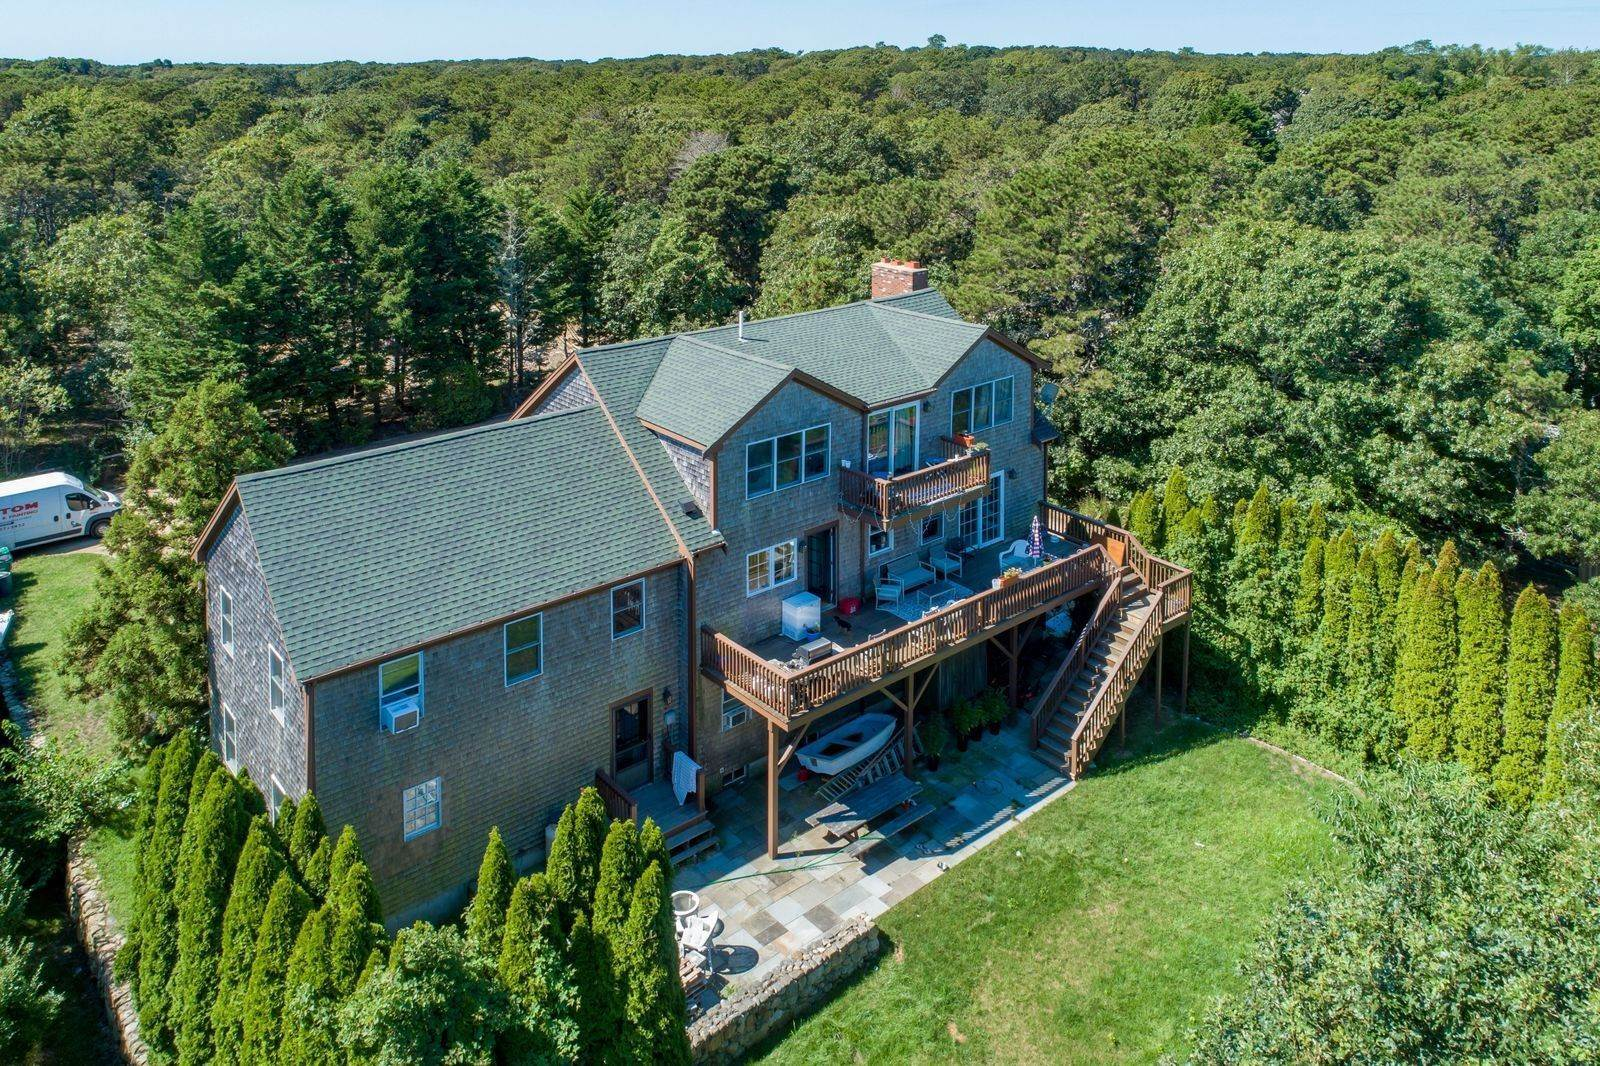 2. Single Family Home for Sale at 81 12th Street North, Edgartown, Massachusetts,02539 United States